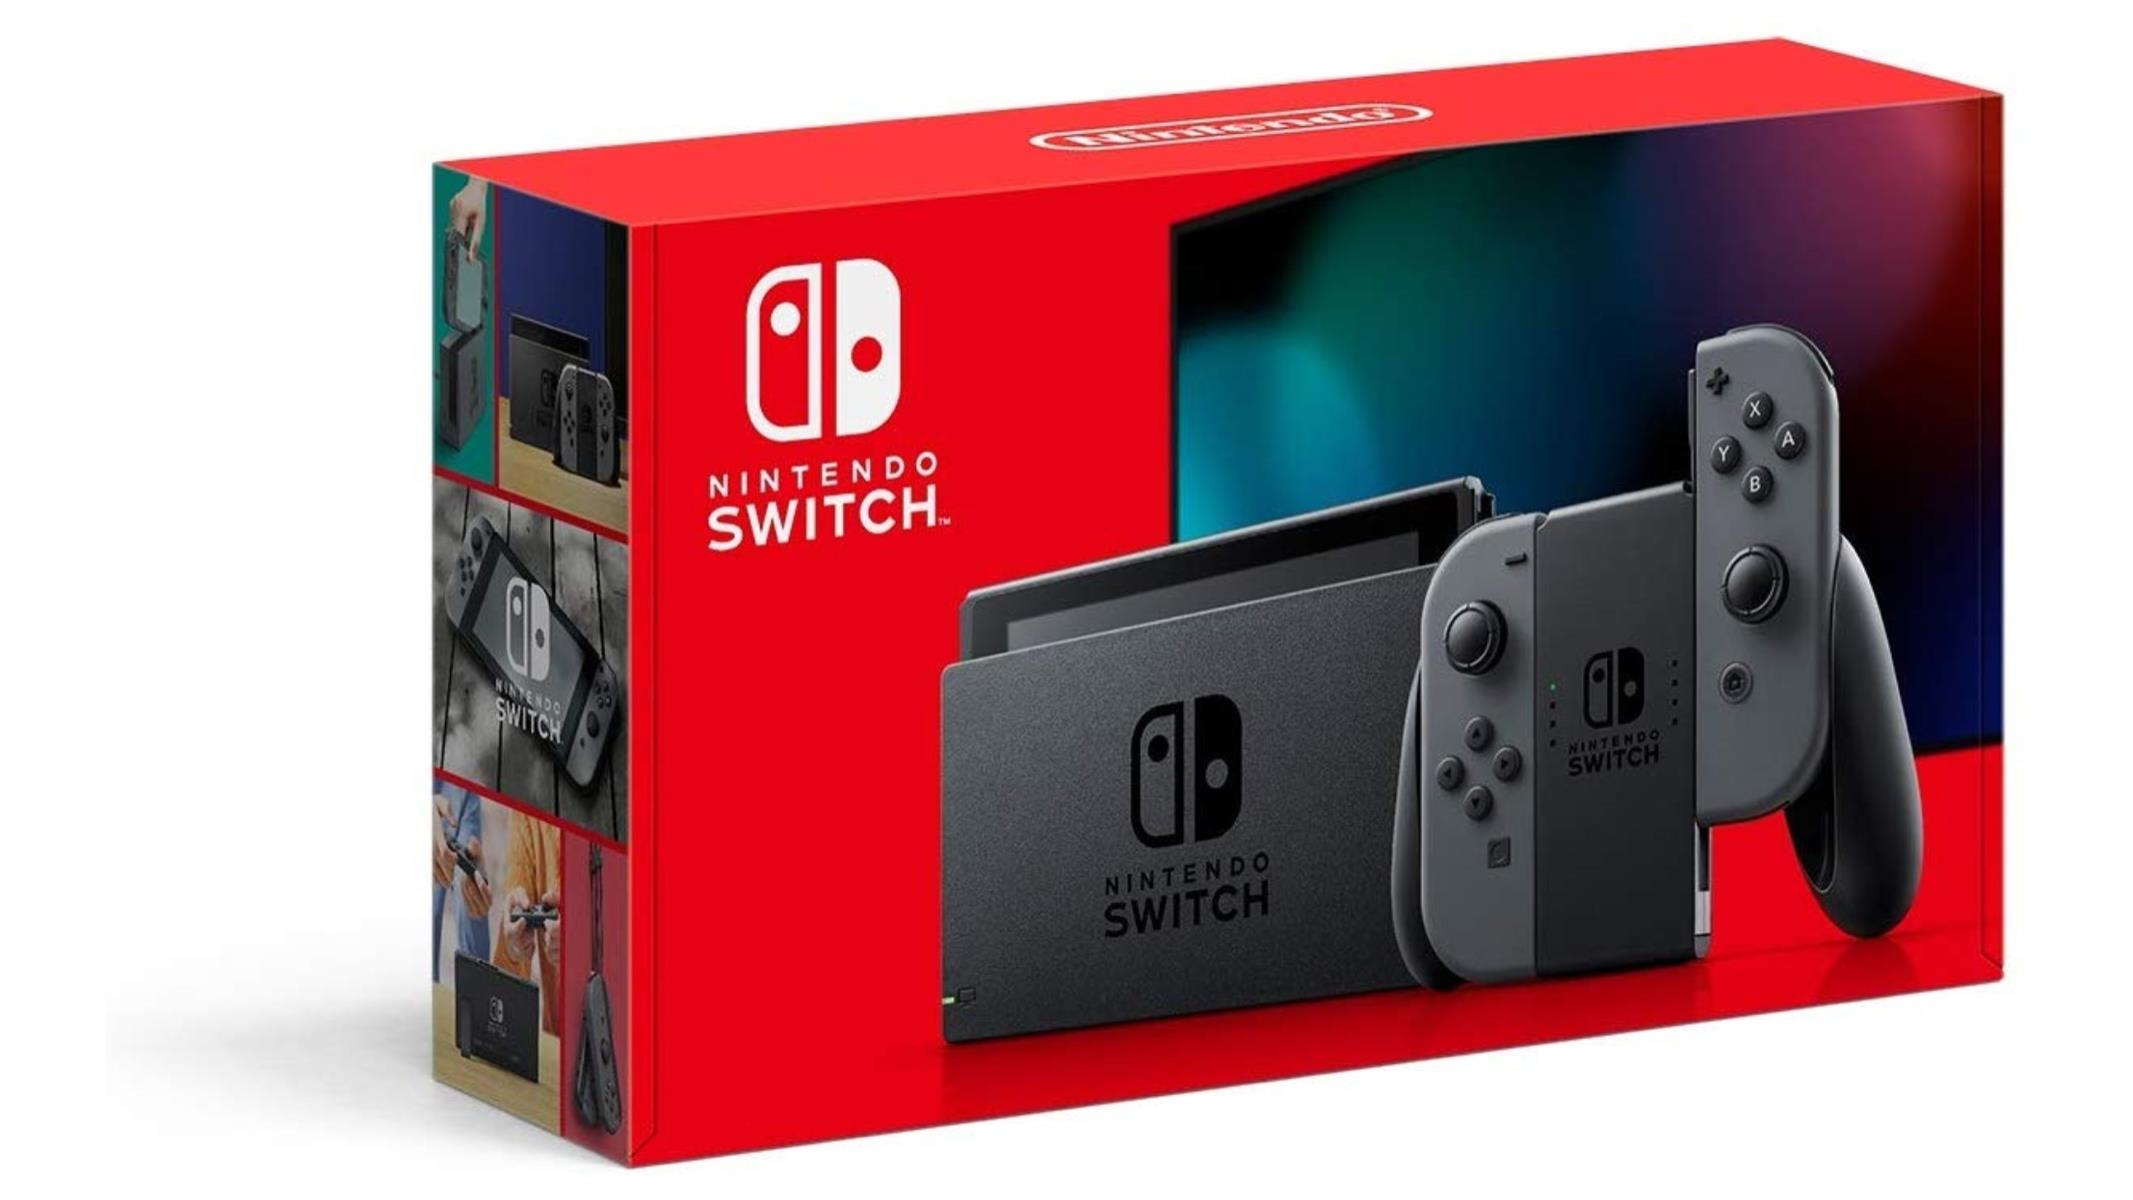 Upgrade To The Refreshed Nintendo Switch For 75 At Gamestop With